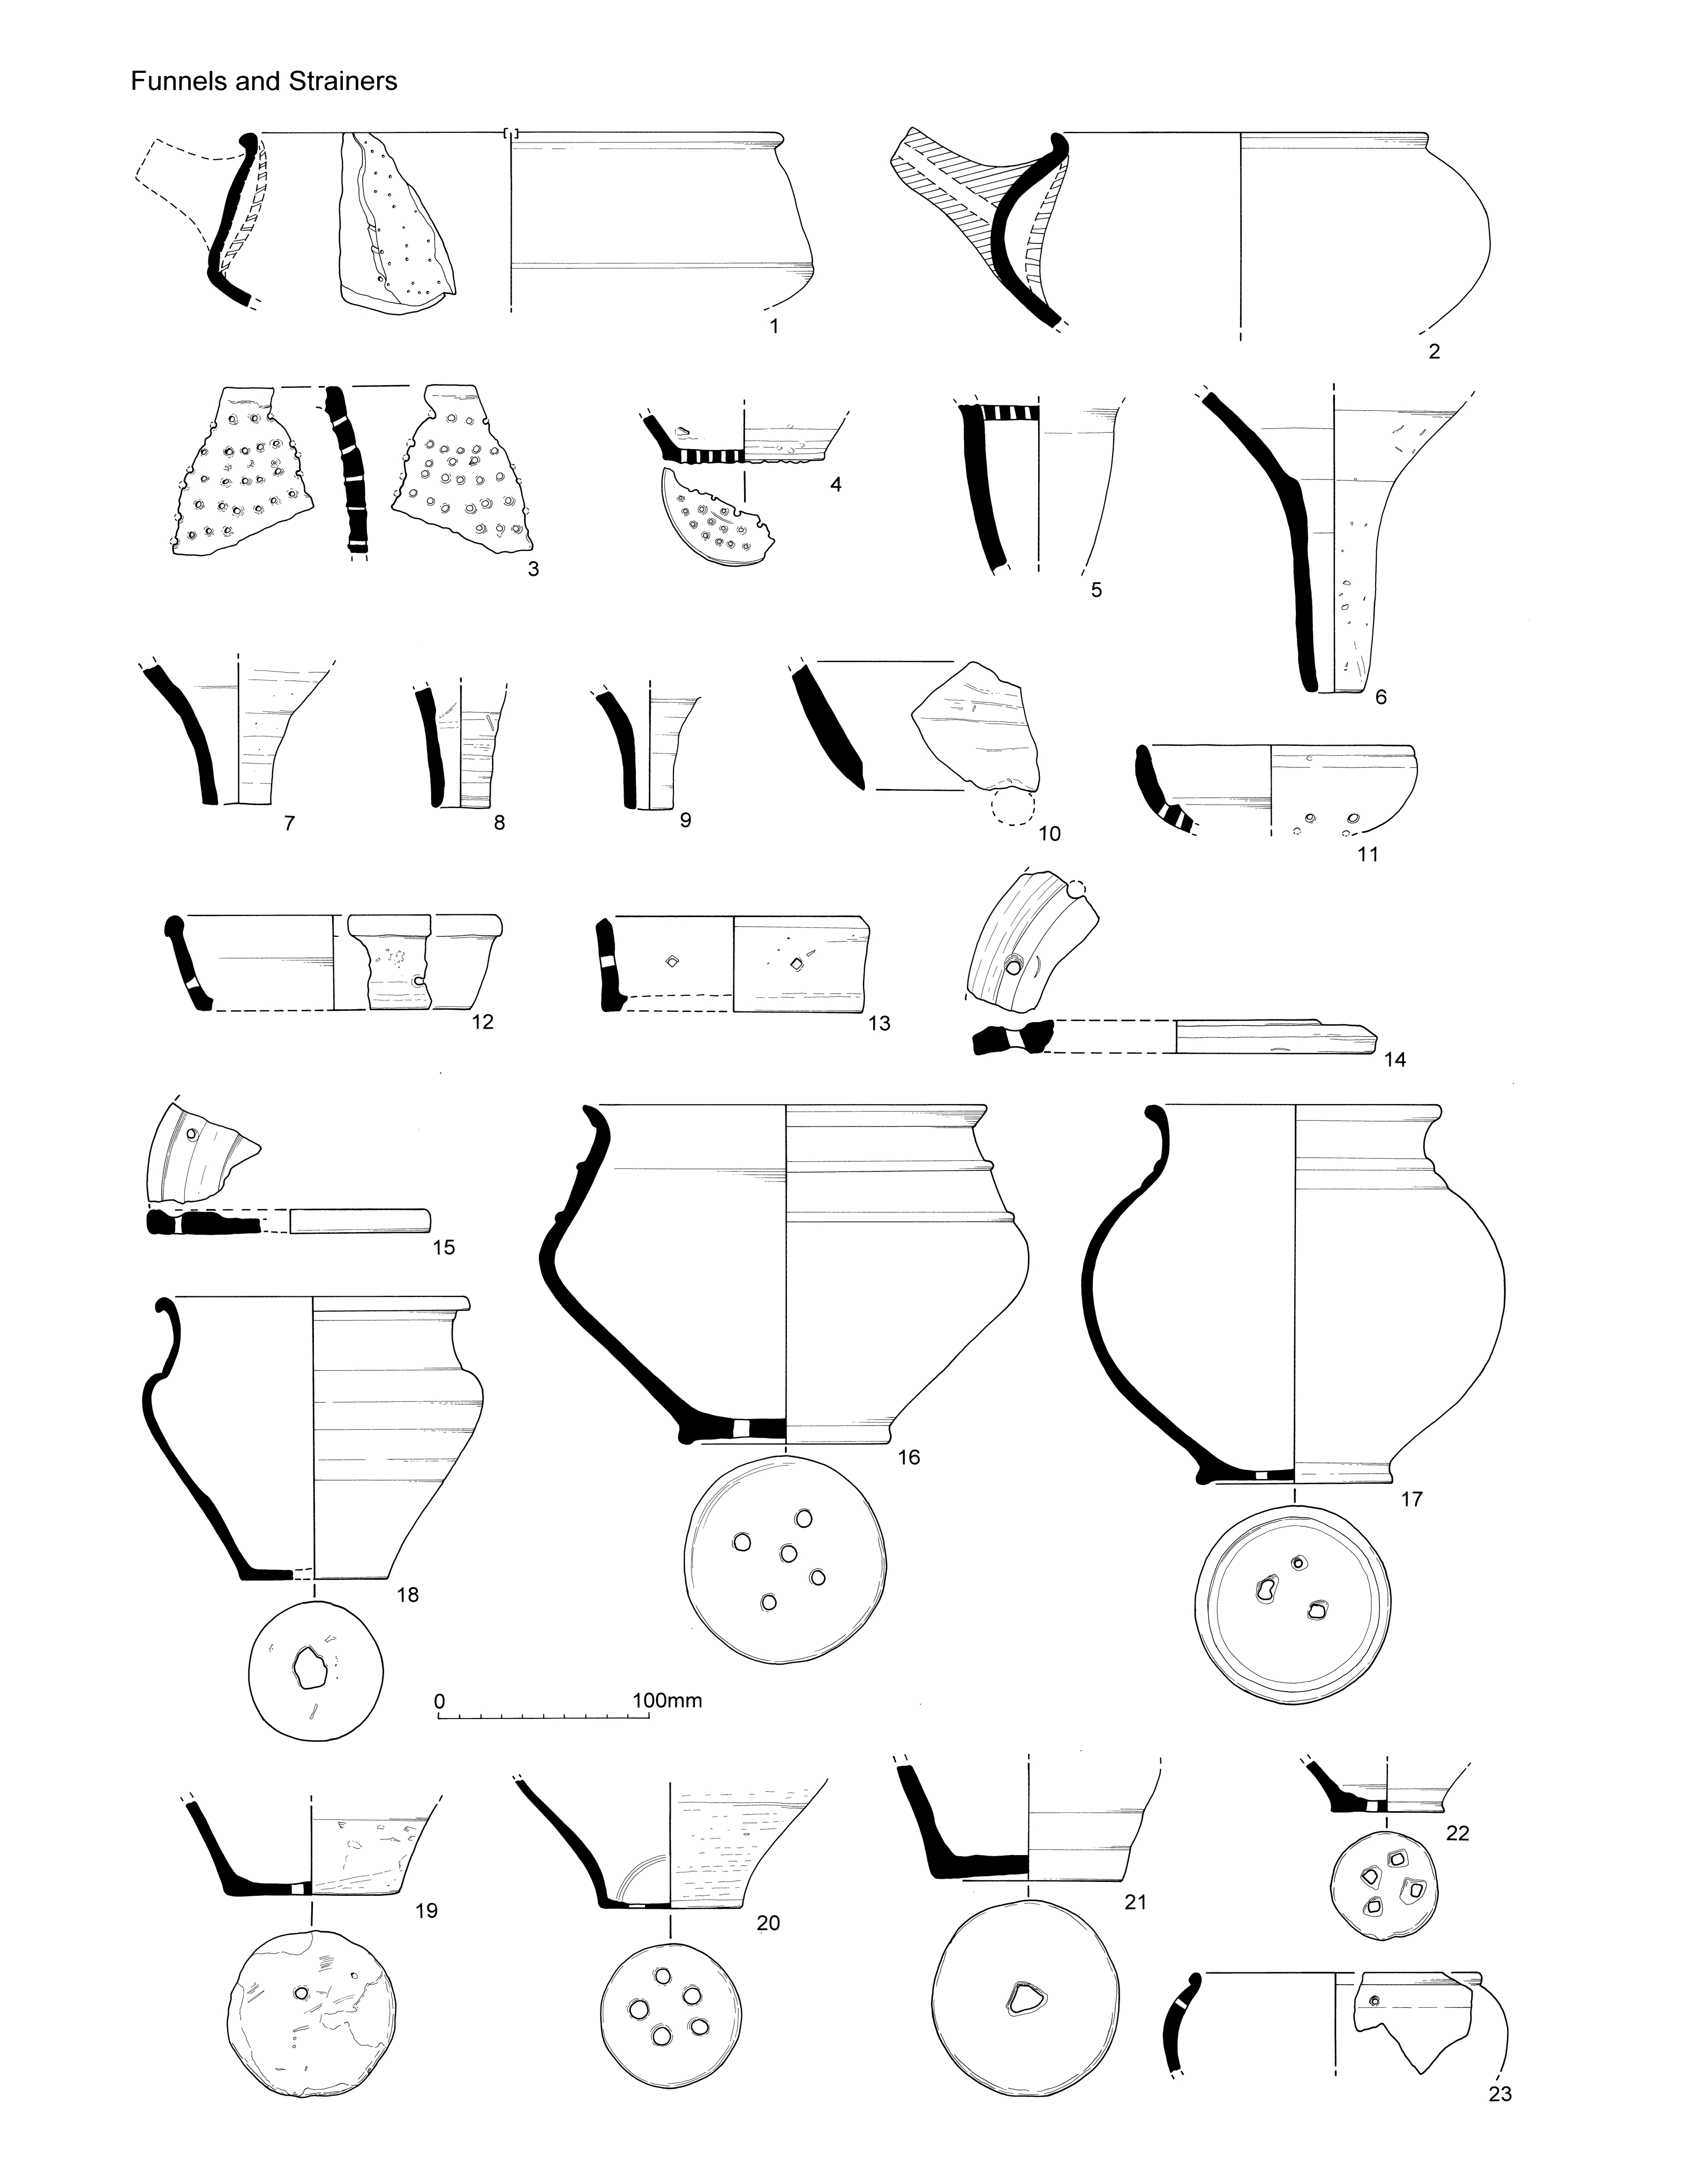 Internet Archaeol 40 Atkinson And Preston Late Iron Age Roman Schematic Of Thewhole 10 Segment Strip It39s Pretty Straightforward Nos 24 25 Pairs Holes On Either Side A Crack Are Easily Identifiable As Repairs The Shoulder Hole In Jar From Pit Fill 4140